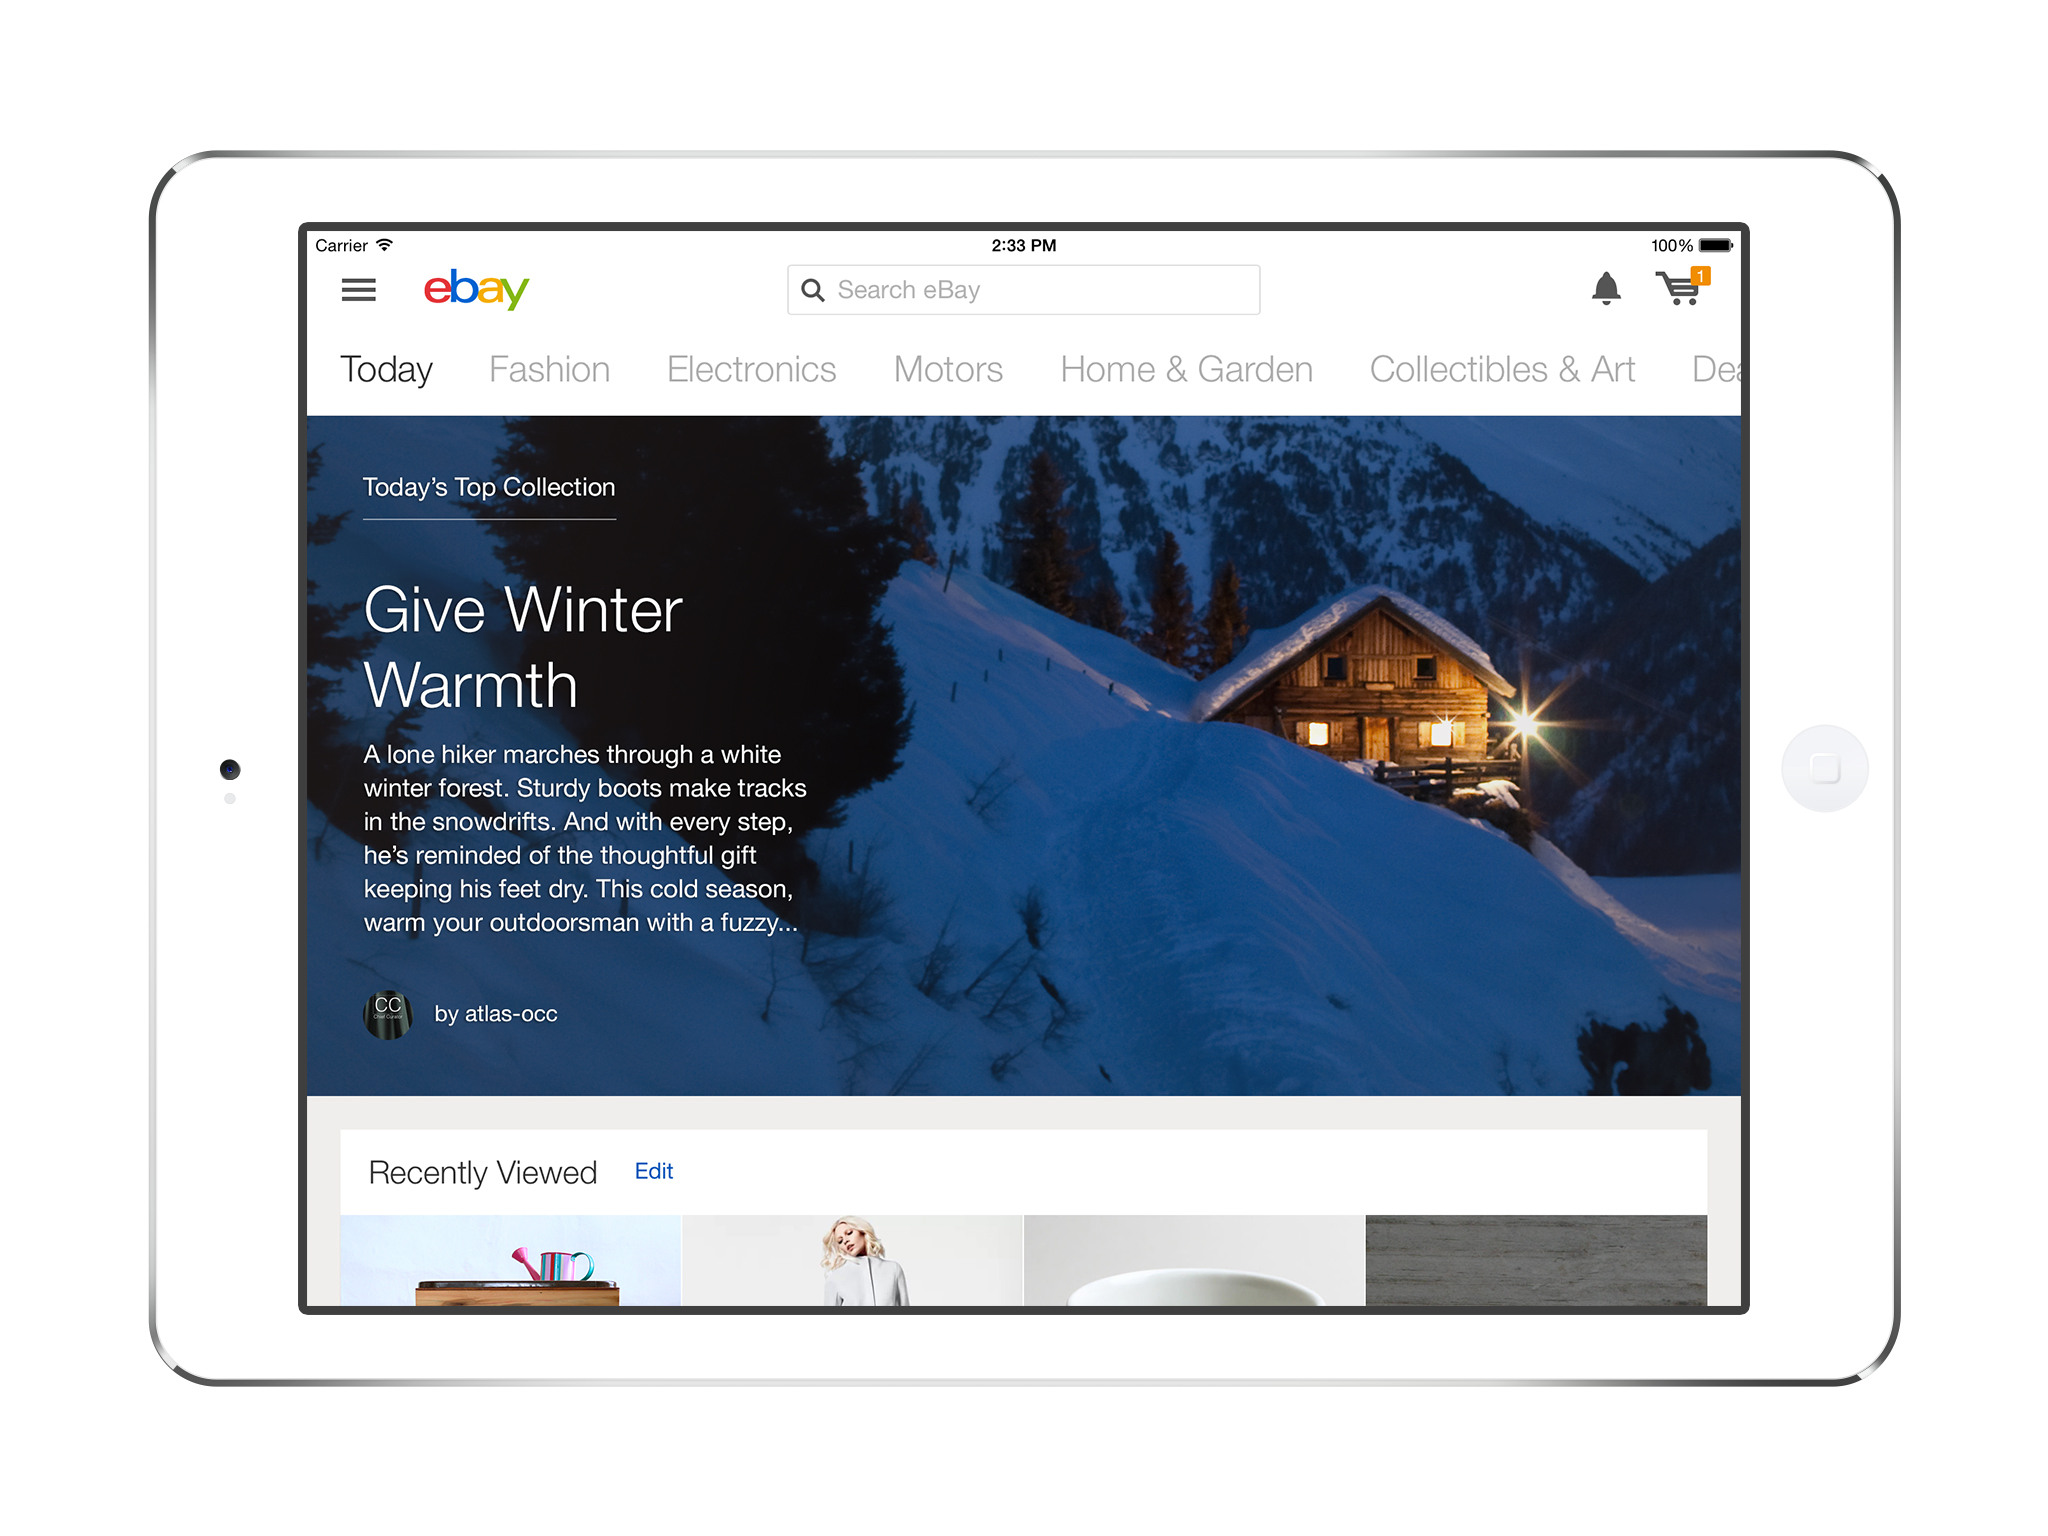 Character Design Ipad App : Ebay s new ipad app design hints at its e commerce future